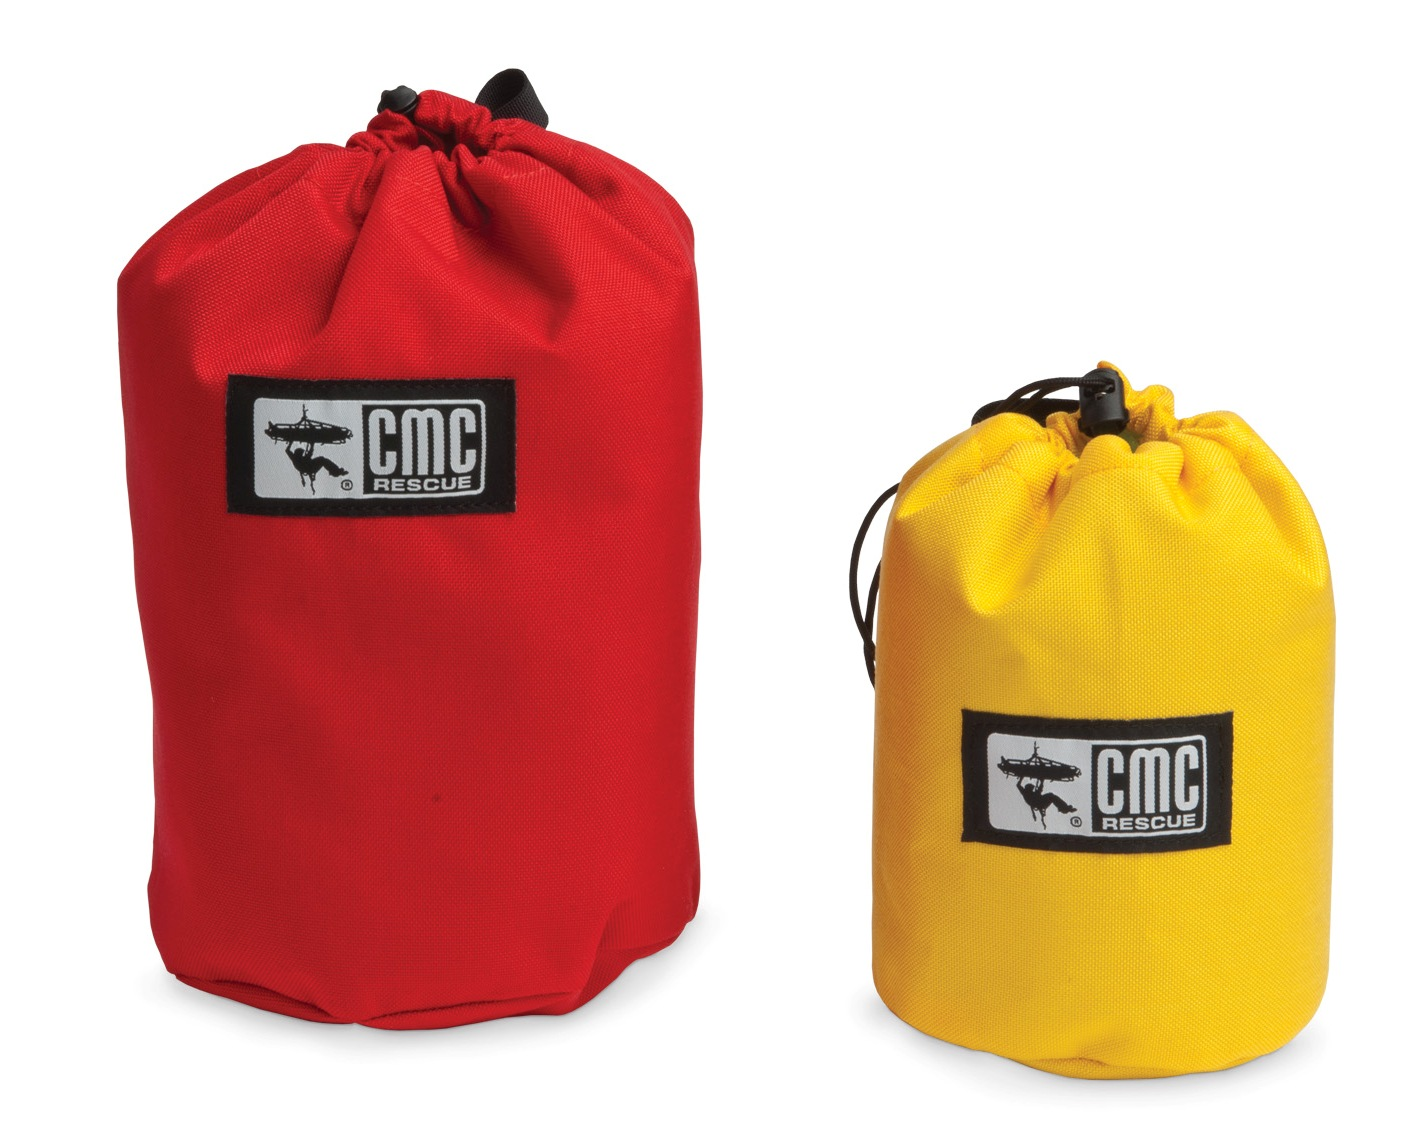 Rope and Rescue Bags for Law Enforcement Professionals